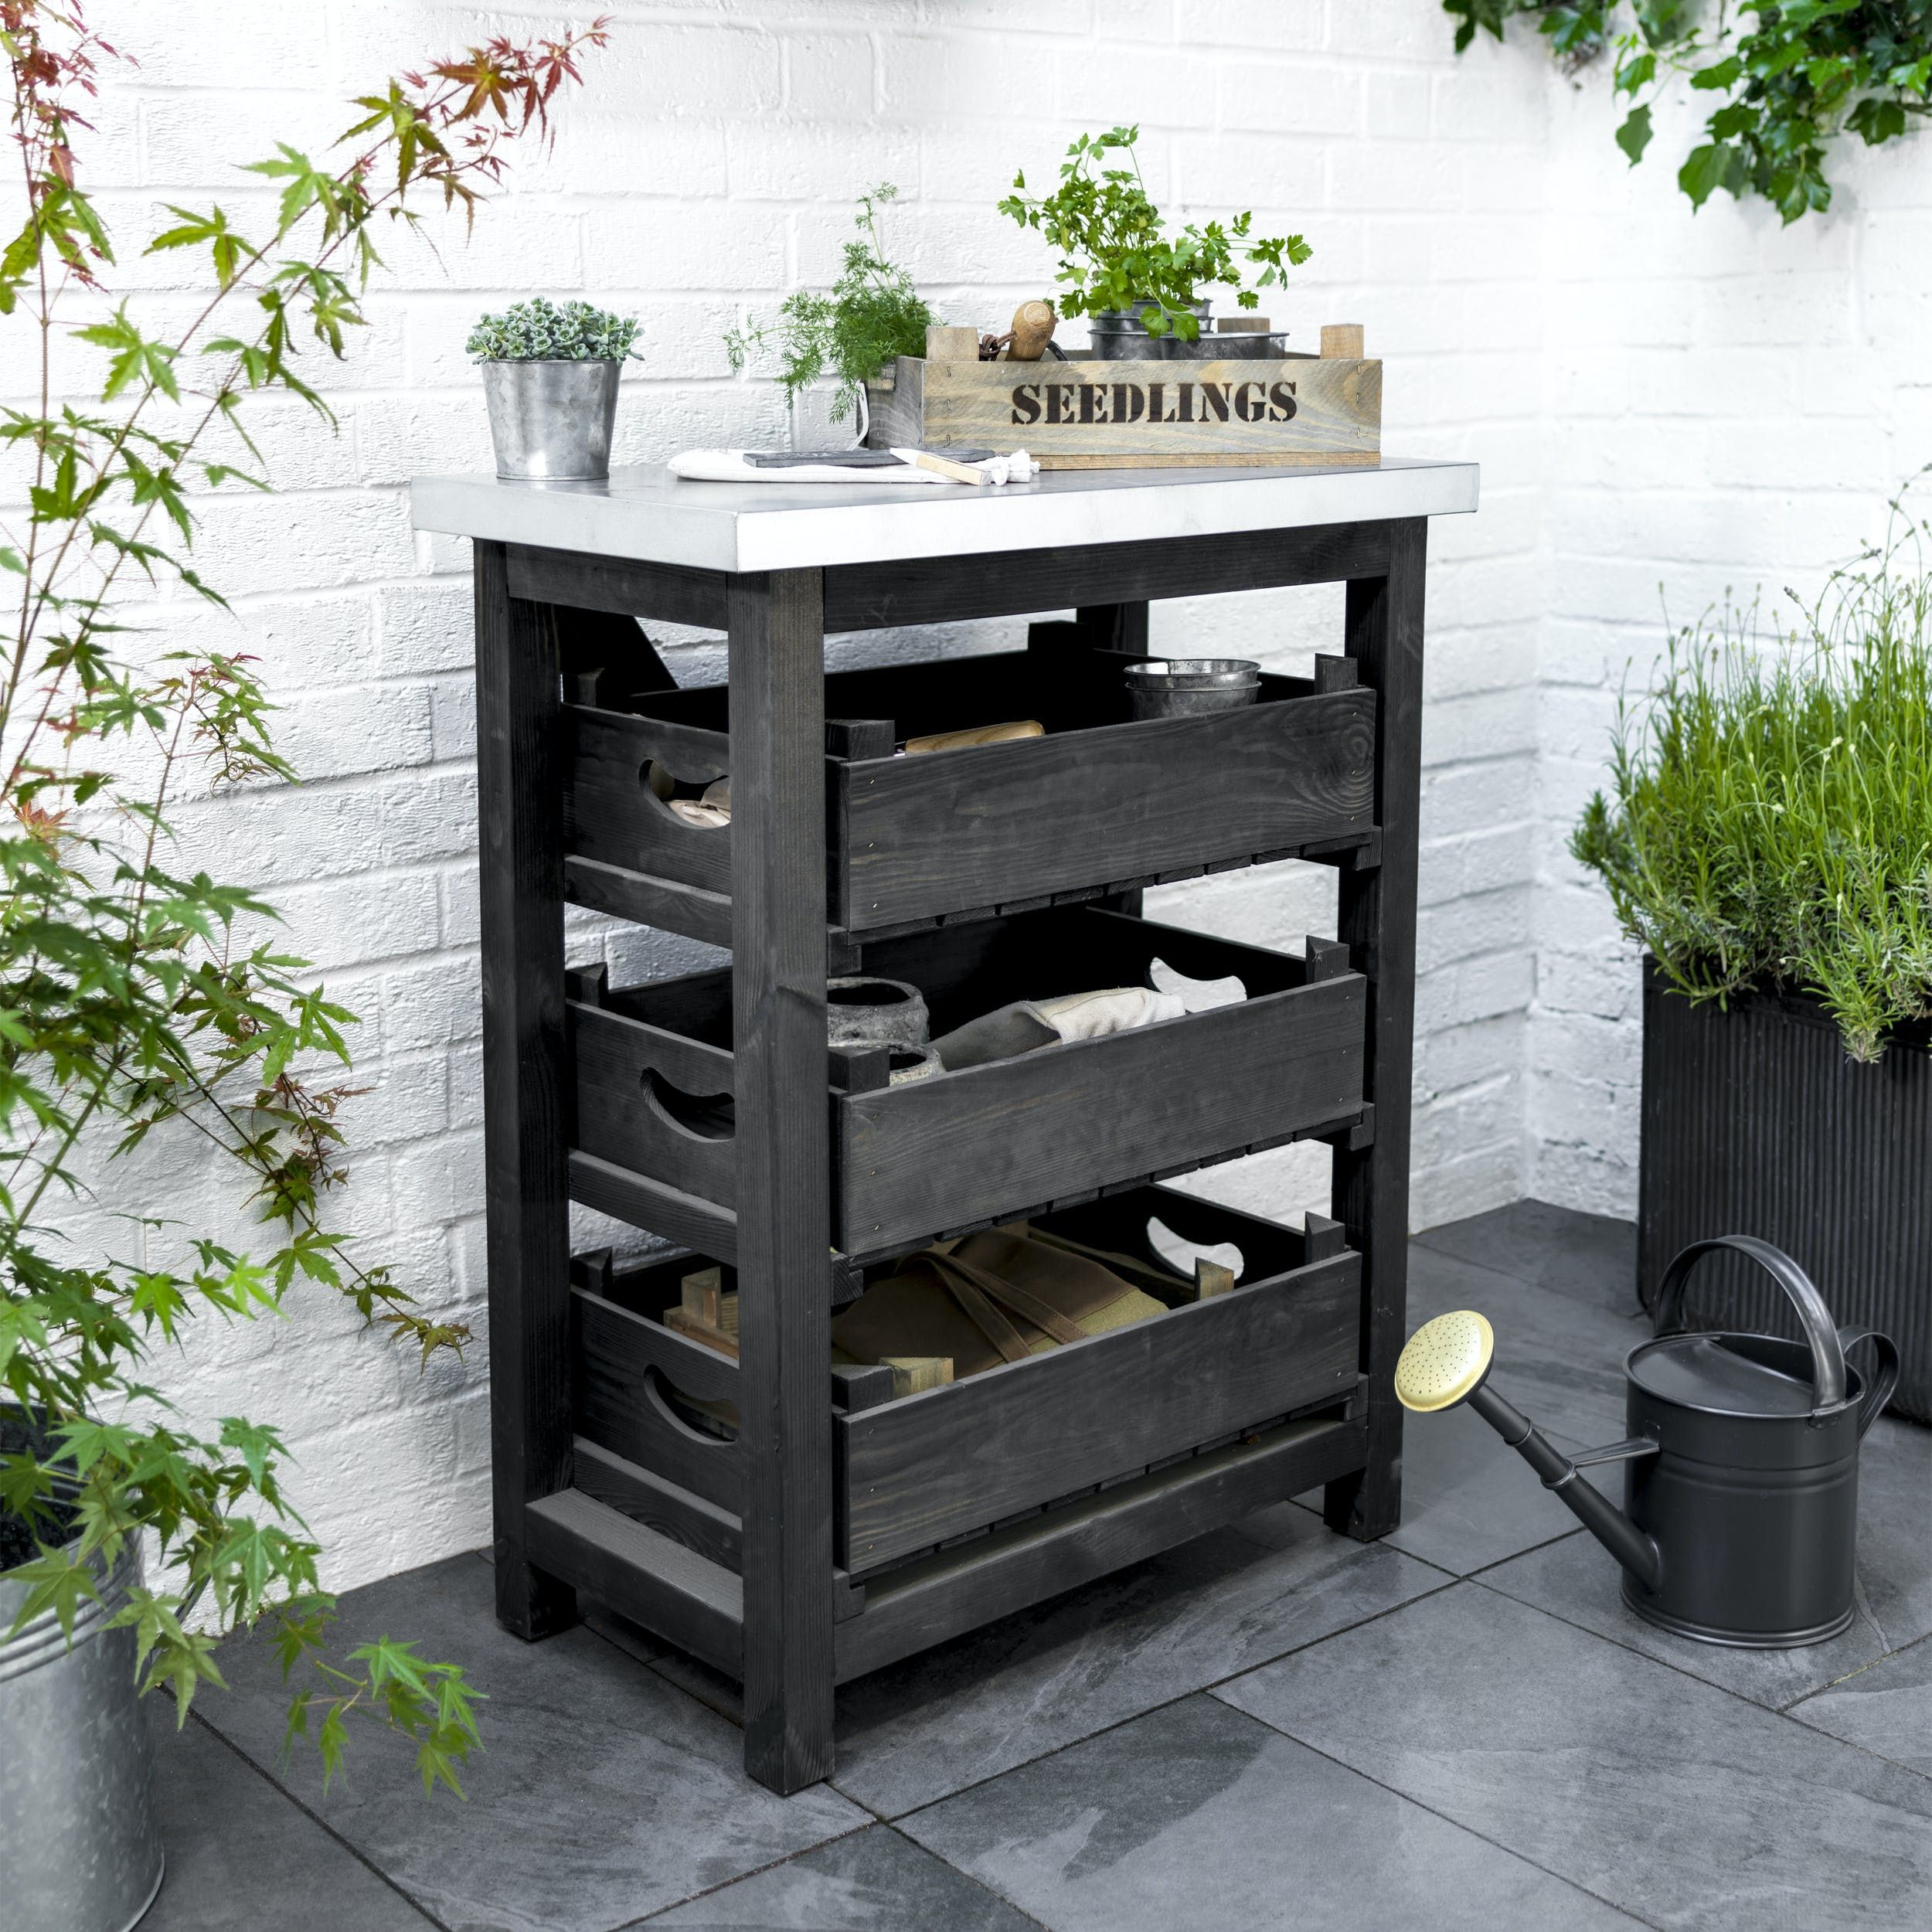 Garden storage: 9 solutions for a neat and tidy outdoor space